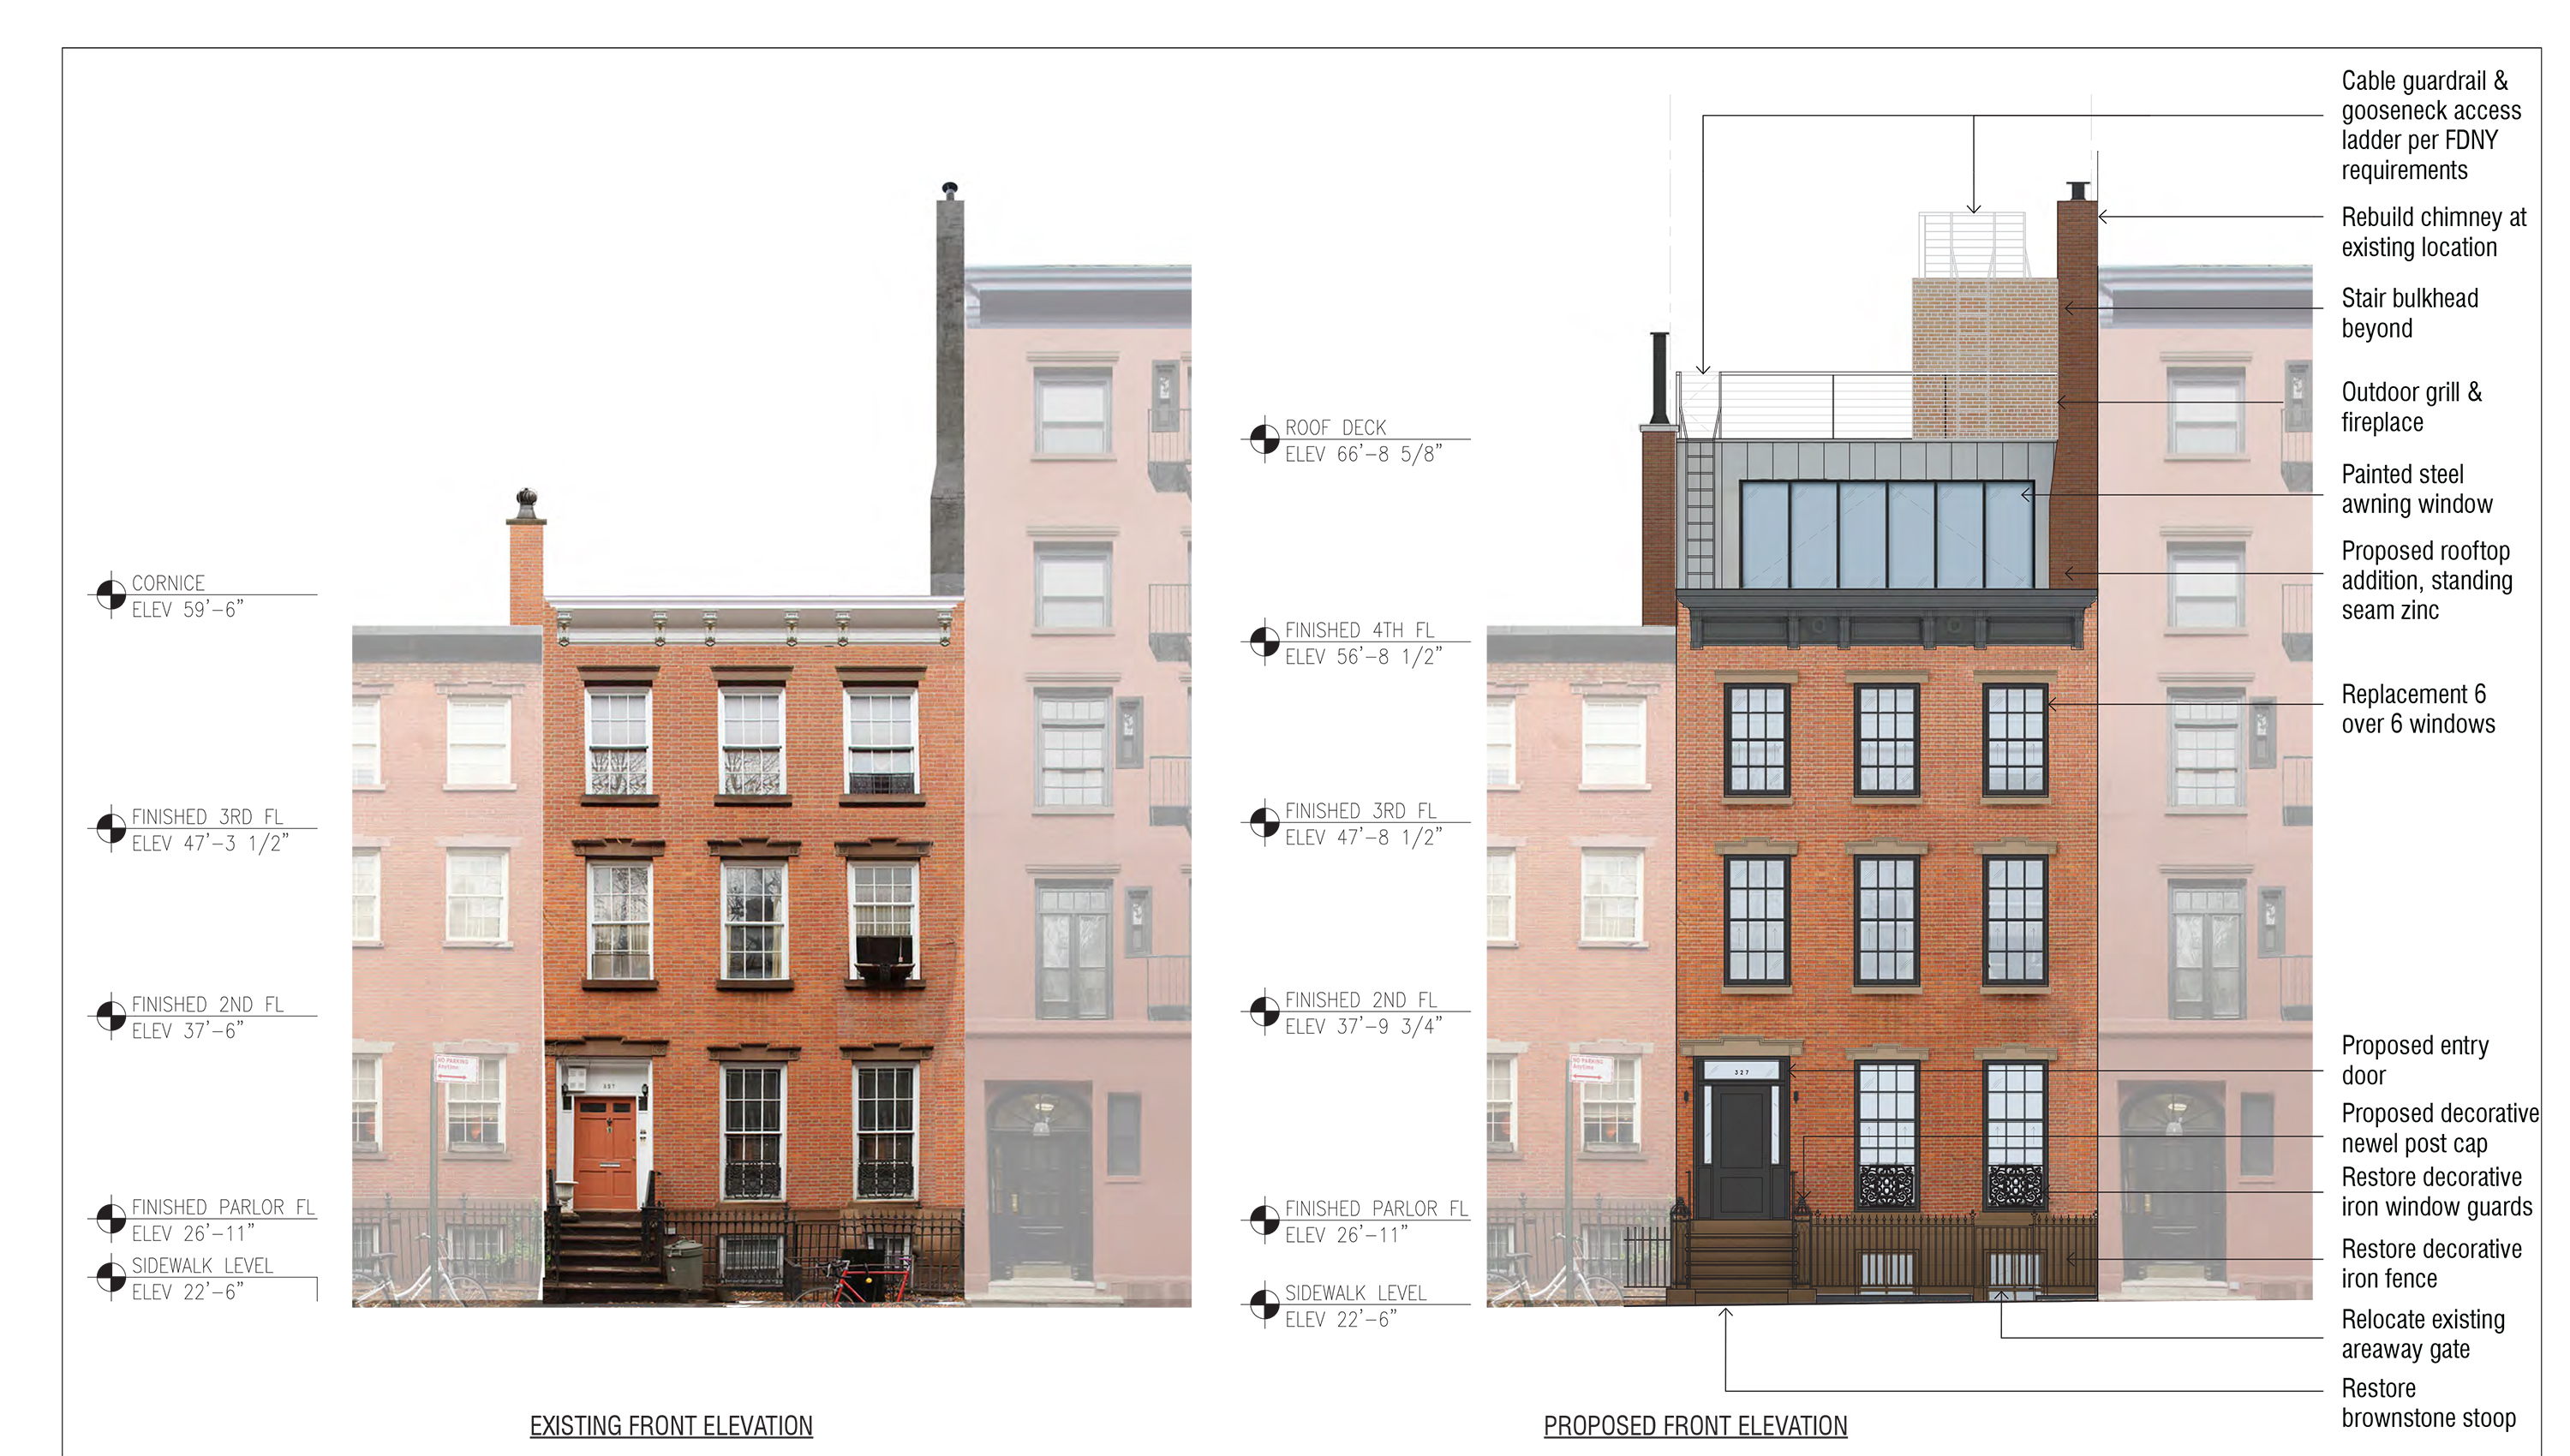 Front elevation plan for 327 West 4th Street